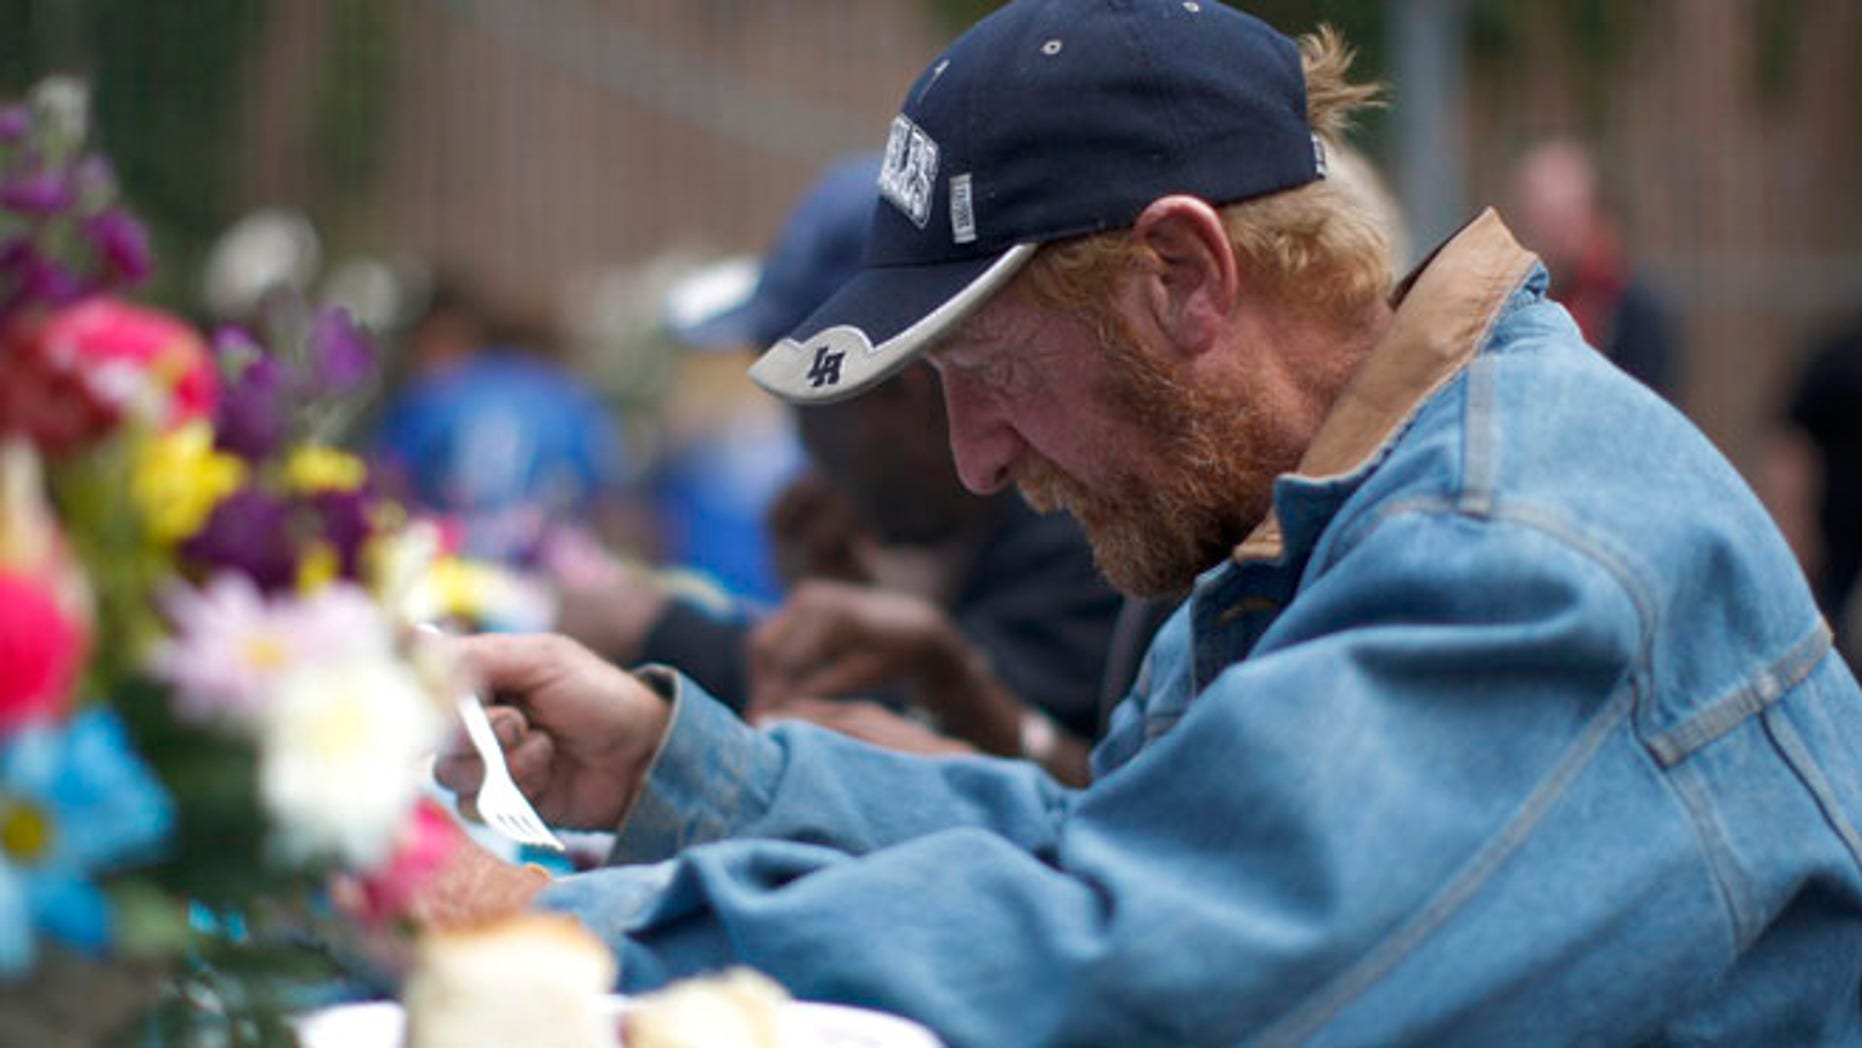 April 18, 2014: A man receives a meal at an event to help the homeless and near-homeless of Skid Row.